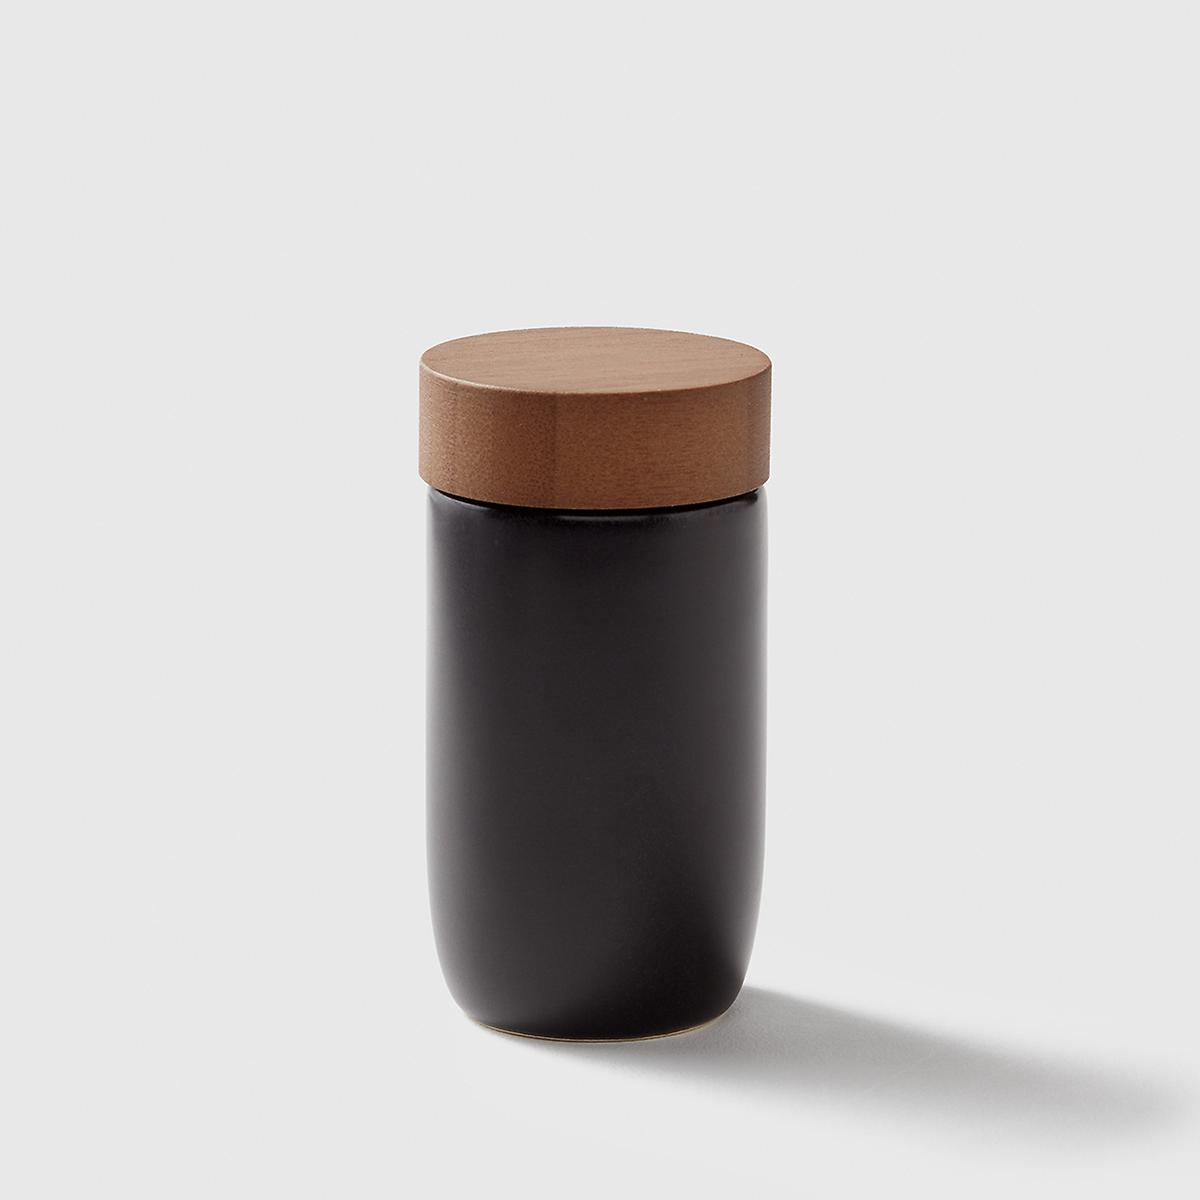 Marie Kondo Ink Black Ceramic Spice Jar with Bamboo Lid